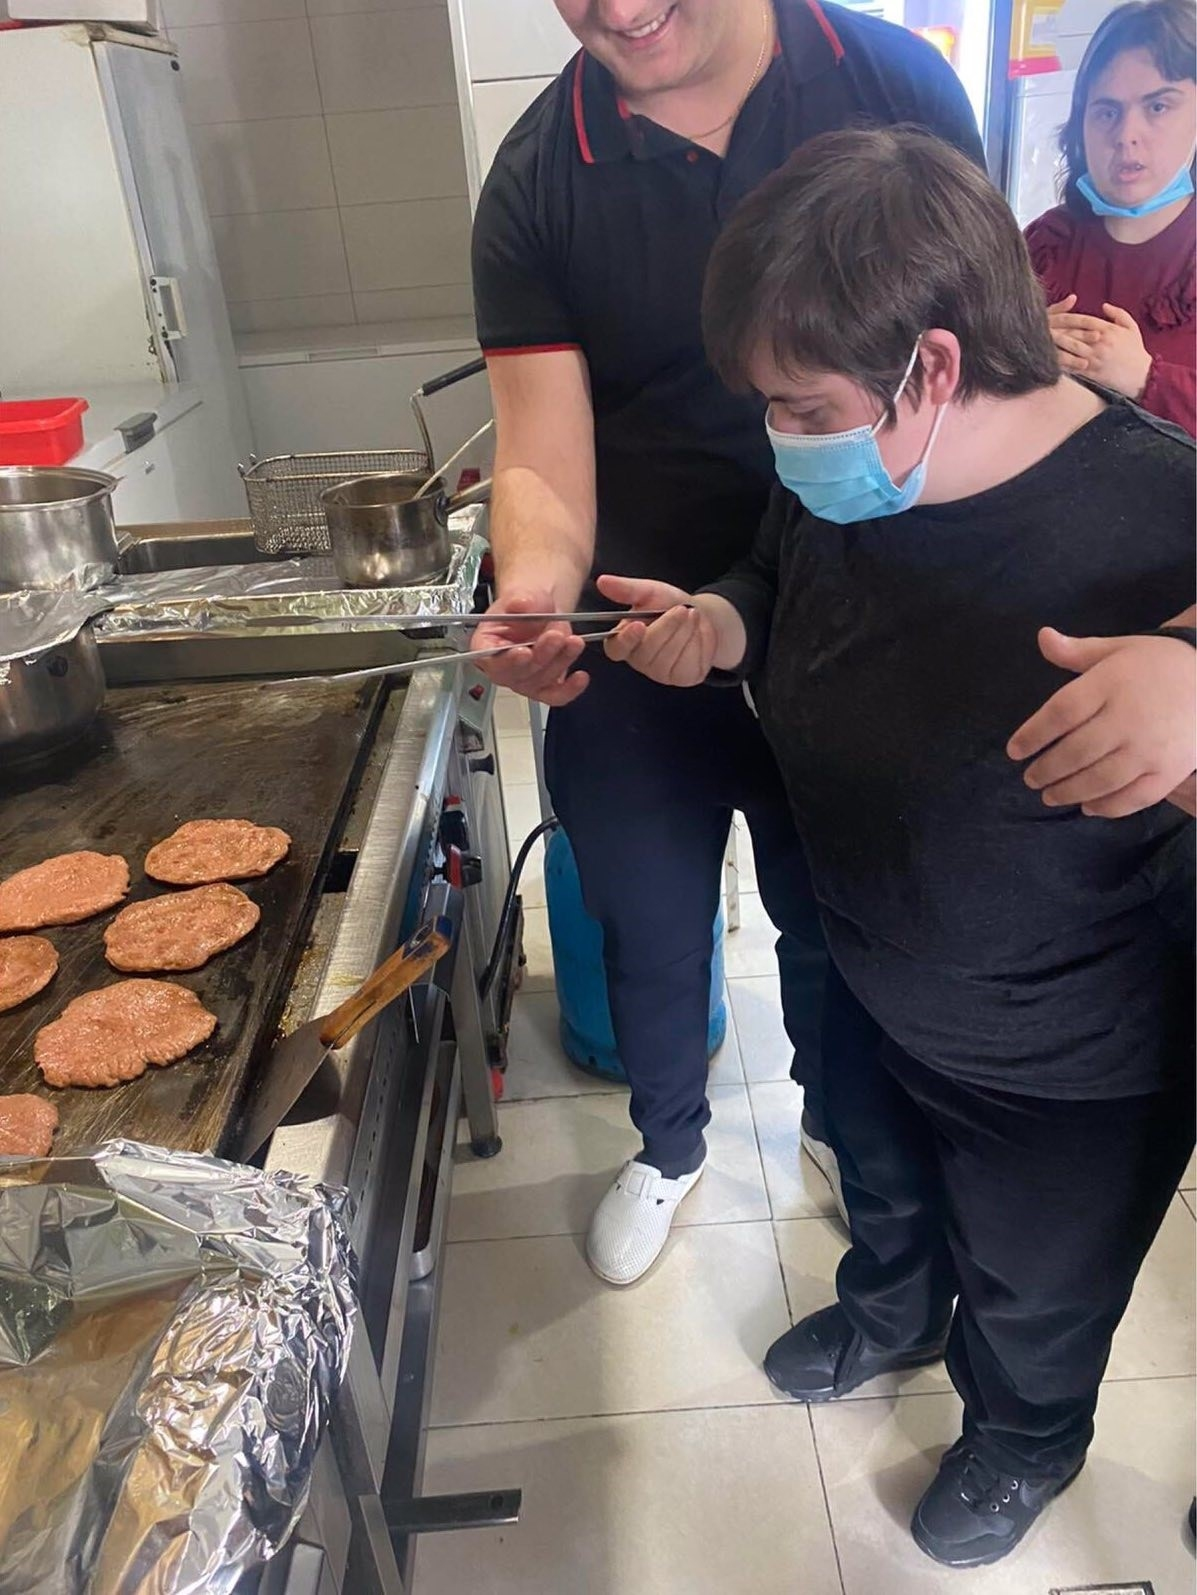 Culinary training for people with disabilities